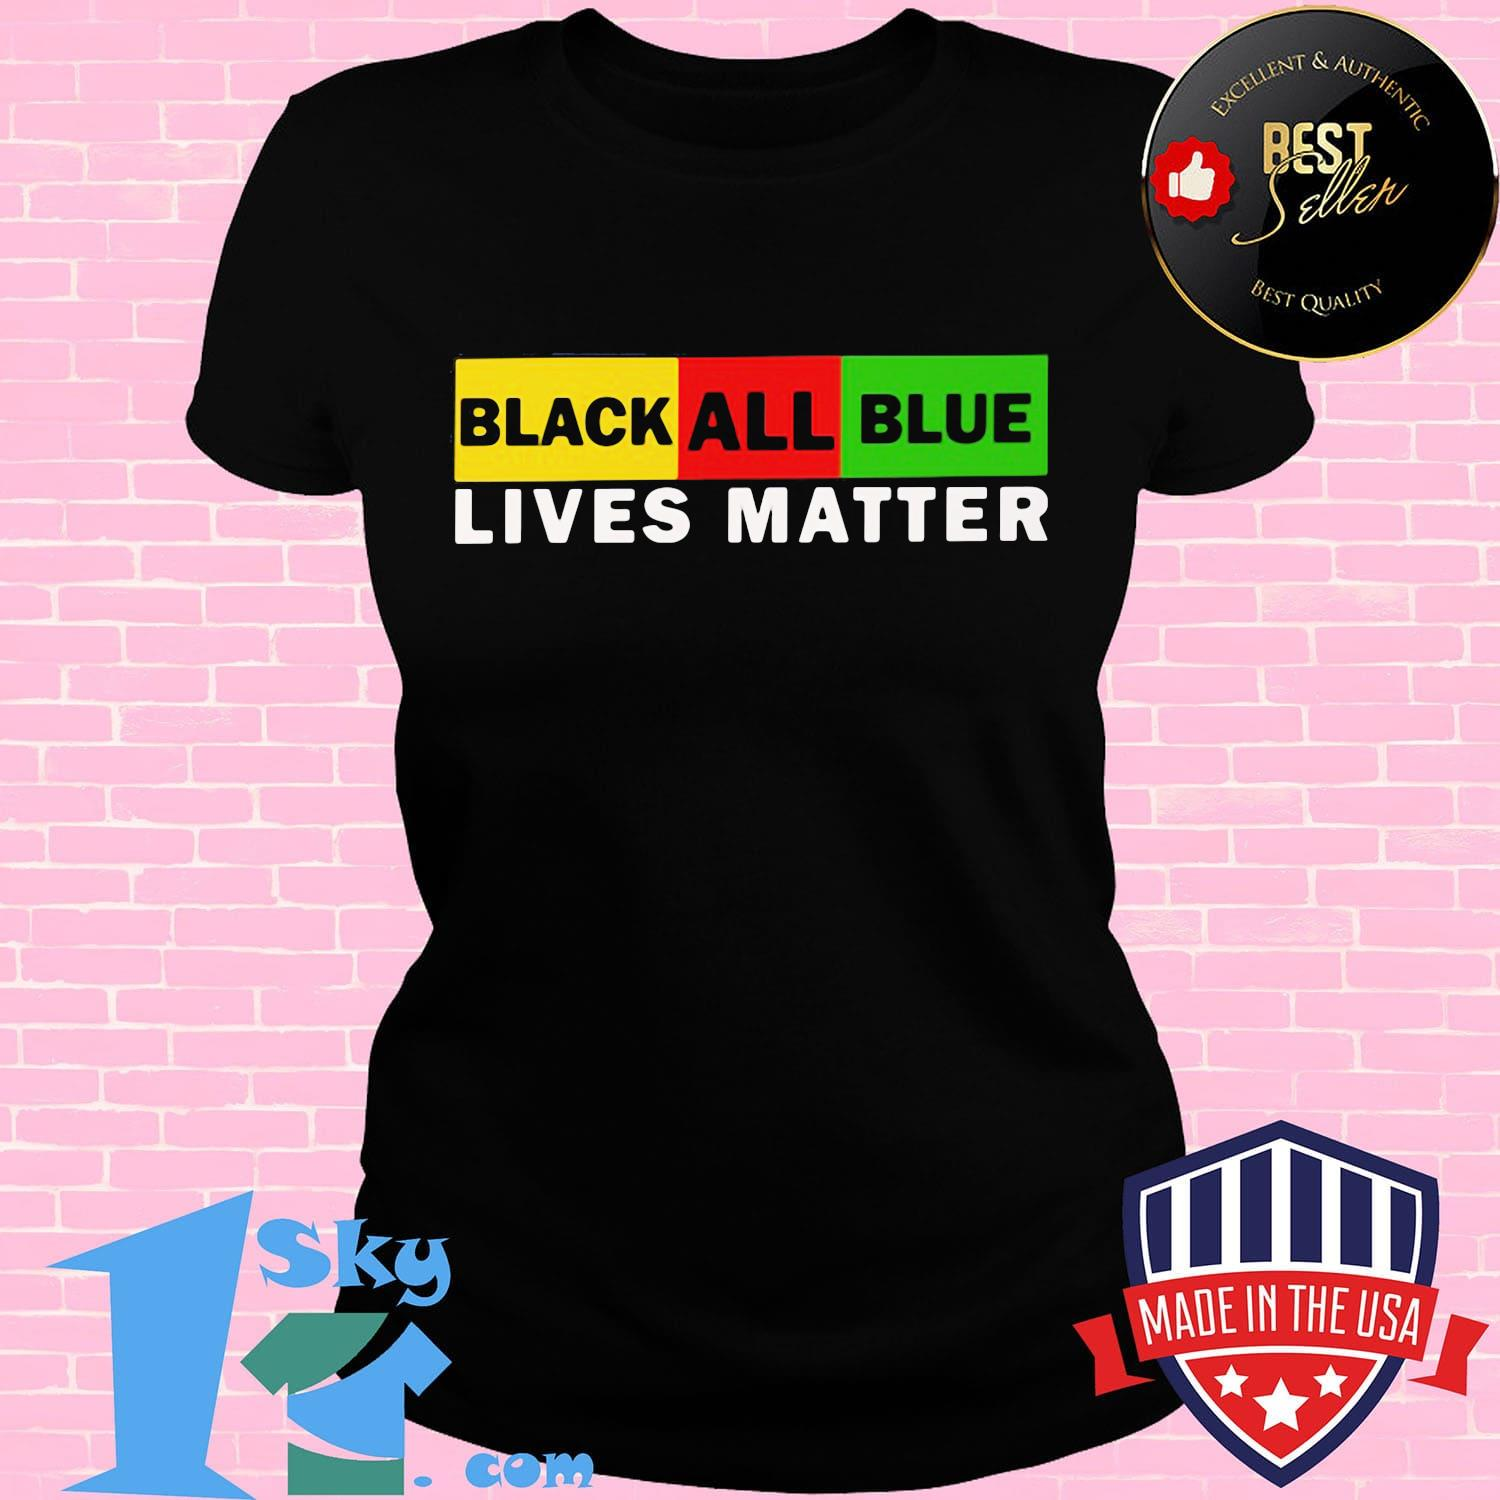 Black All Blue Lives Matter Shirt